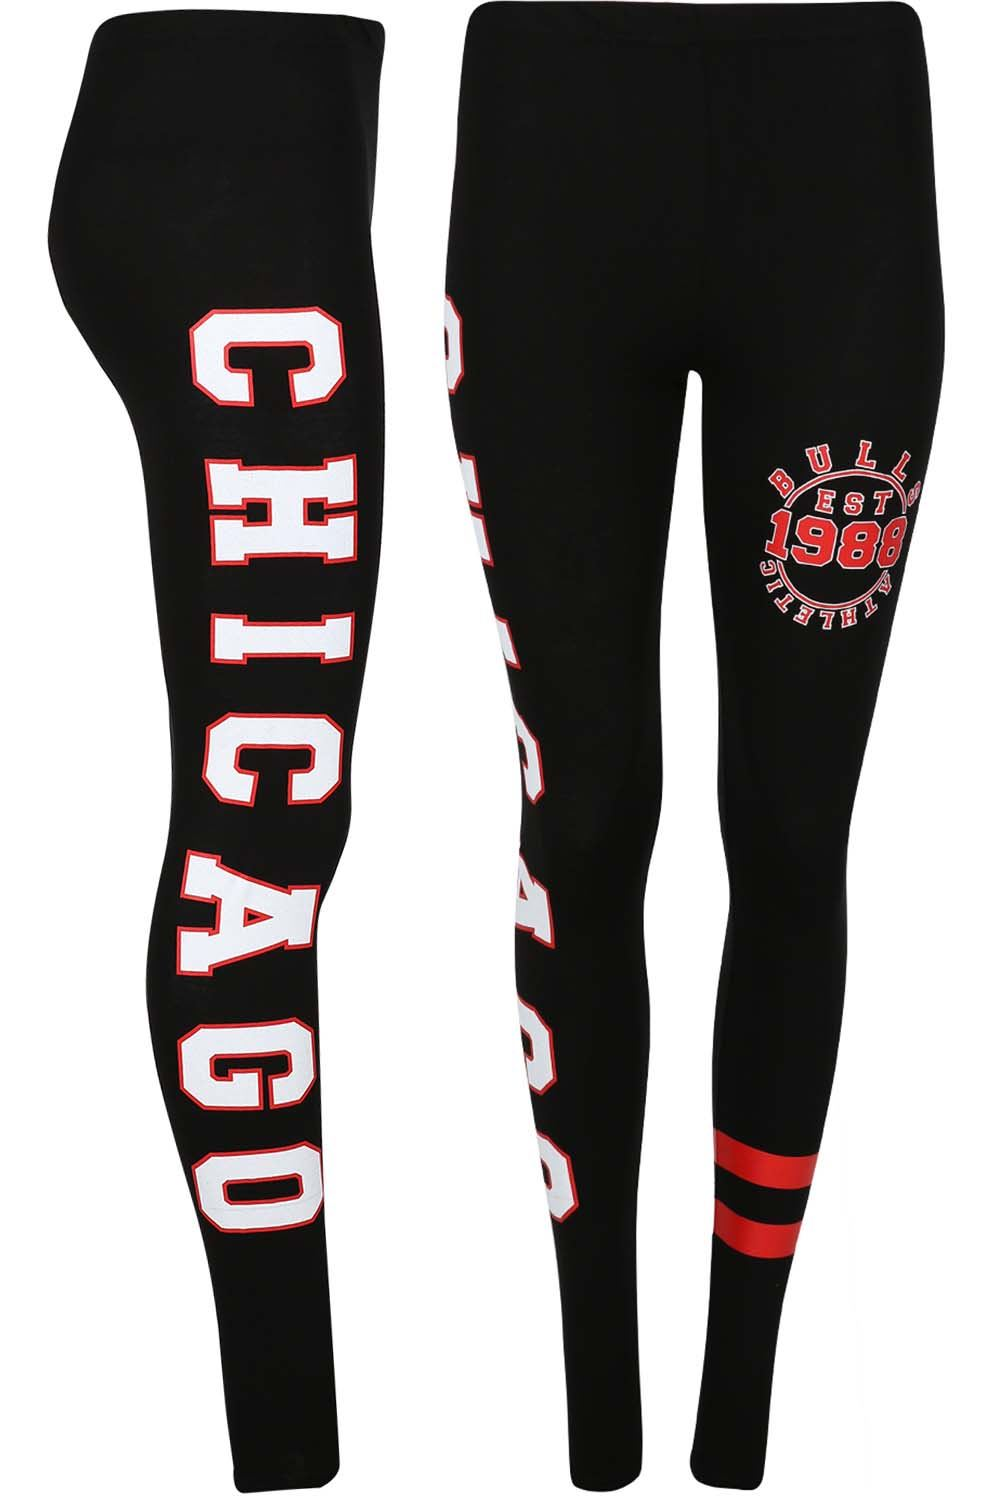 Signore-Donne-Chicago-Brooklyn-76-Skinny-Jegging-Da-Palestra-Yoga-Corsa-Sport-Leggings